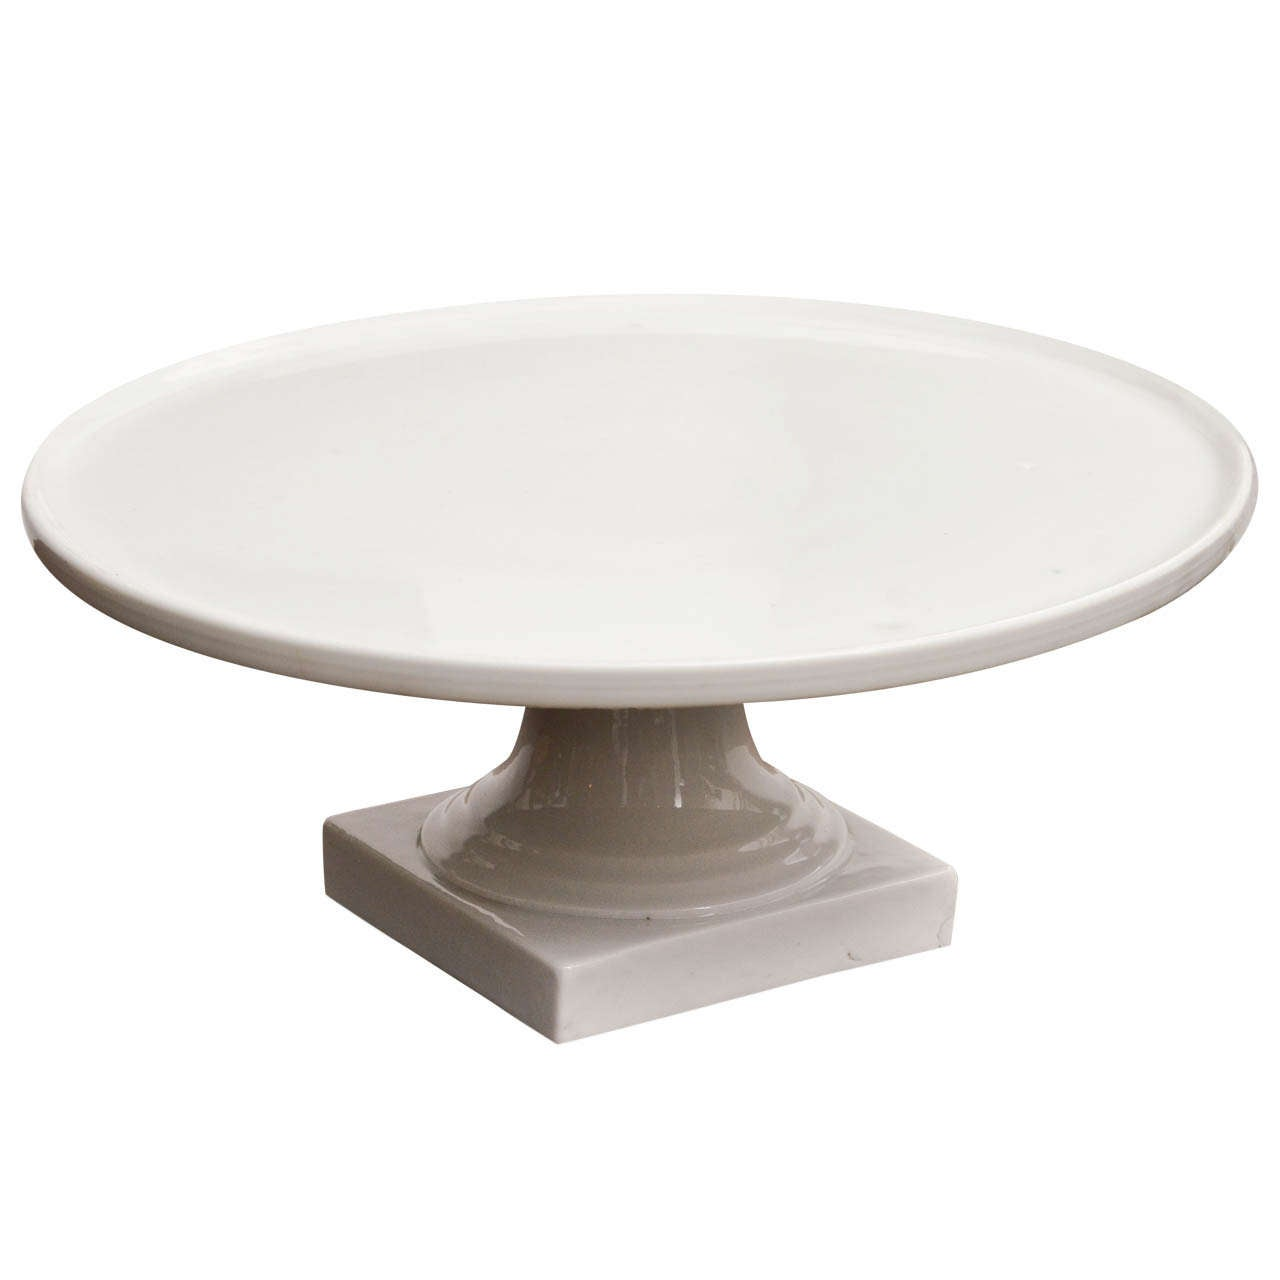 19th Century Glazed Pottery Cake Stand at 1stdibs